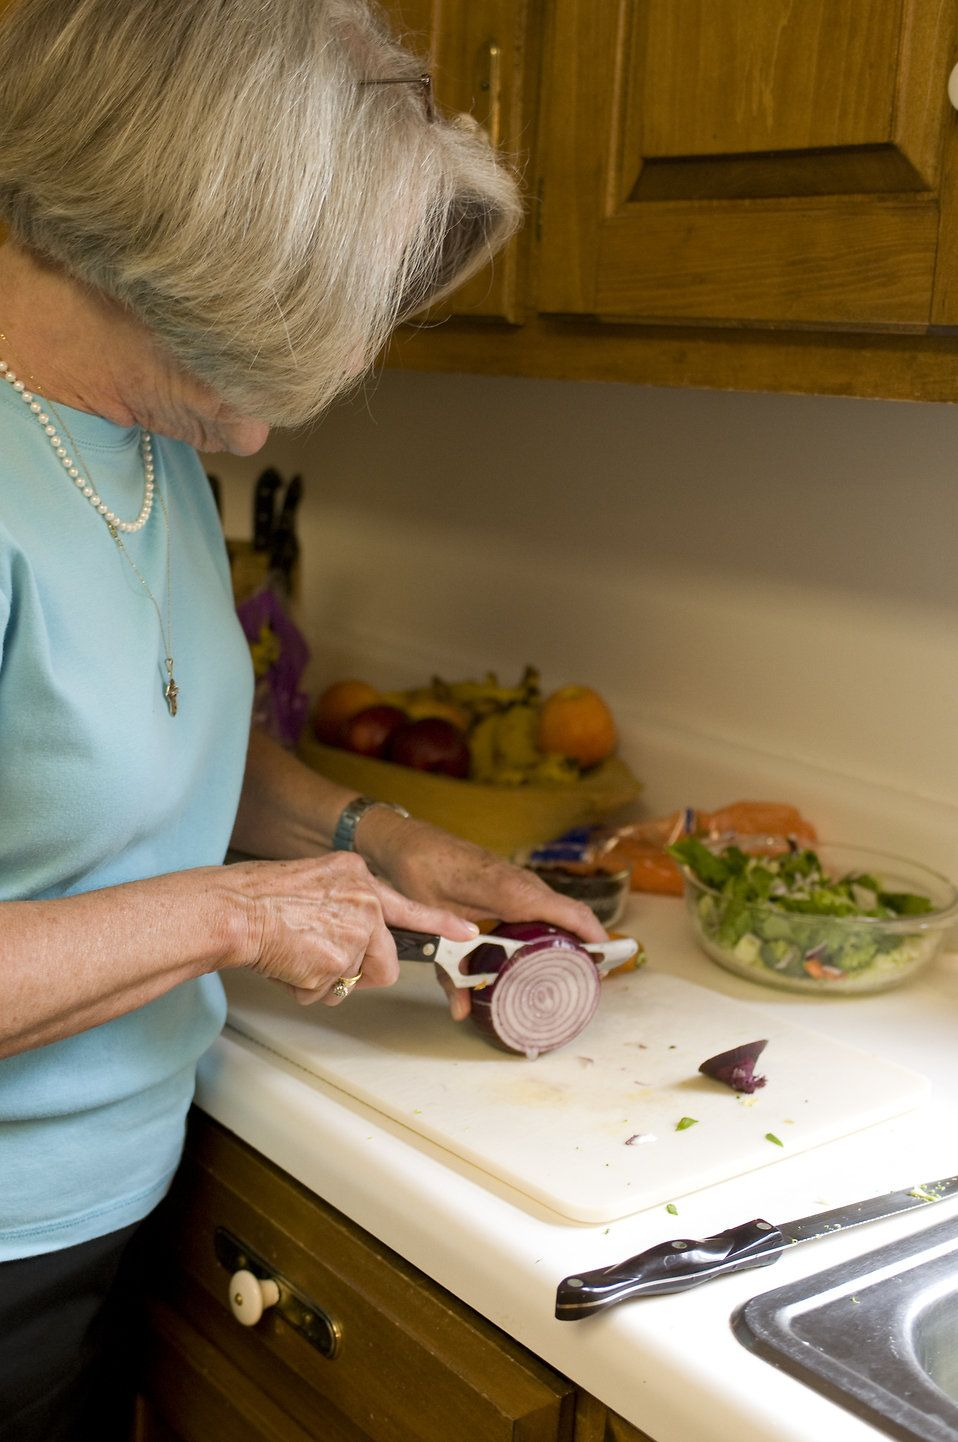 Home Care Assistance New Haven Countyprovides quality and holistic home care in Milford, Woodbridge, Cheshire, and the Greater New Haven area.http://www.homecareassistancenewhaven.com  ***